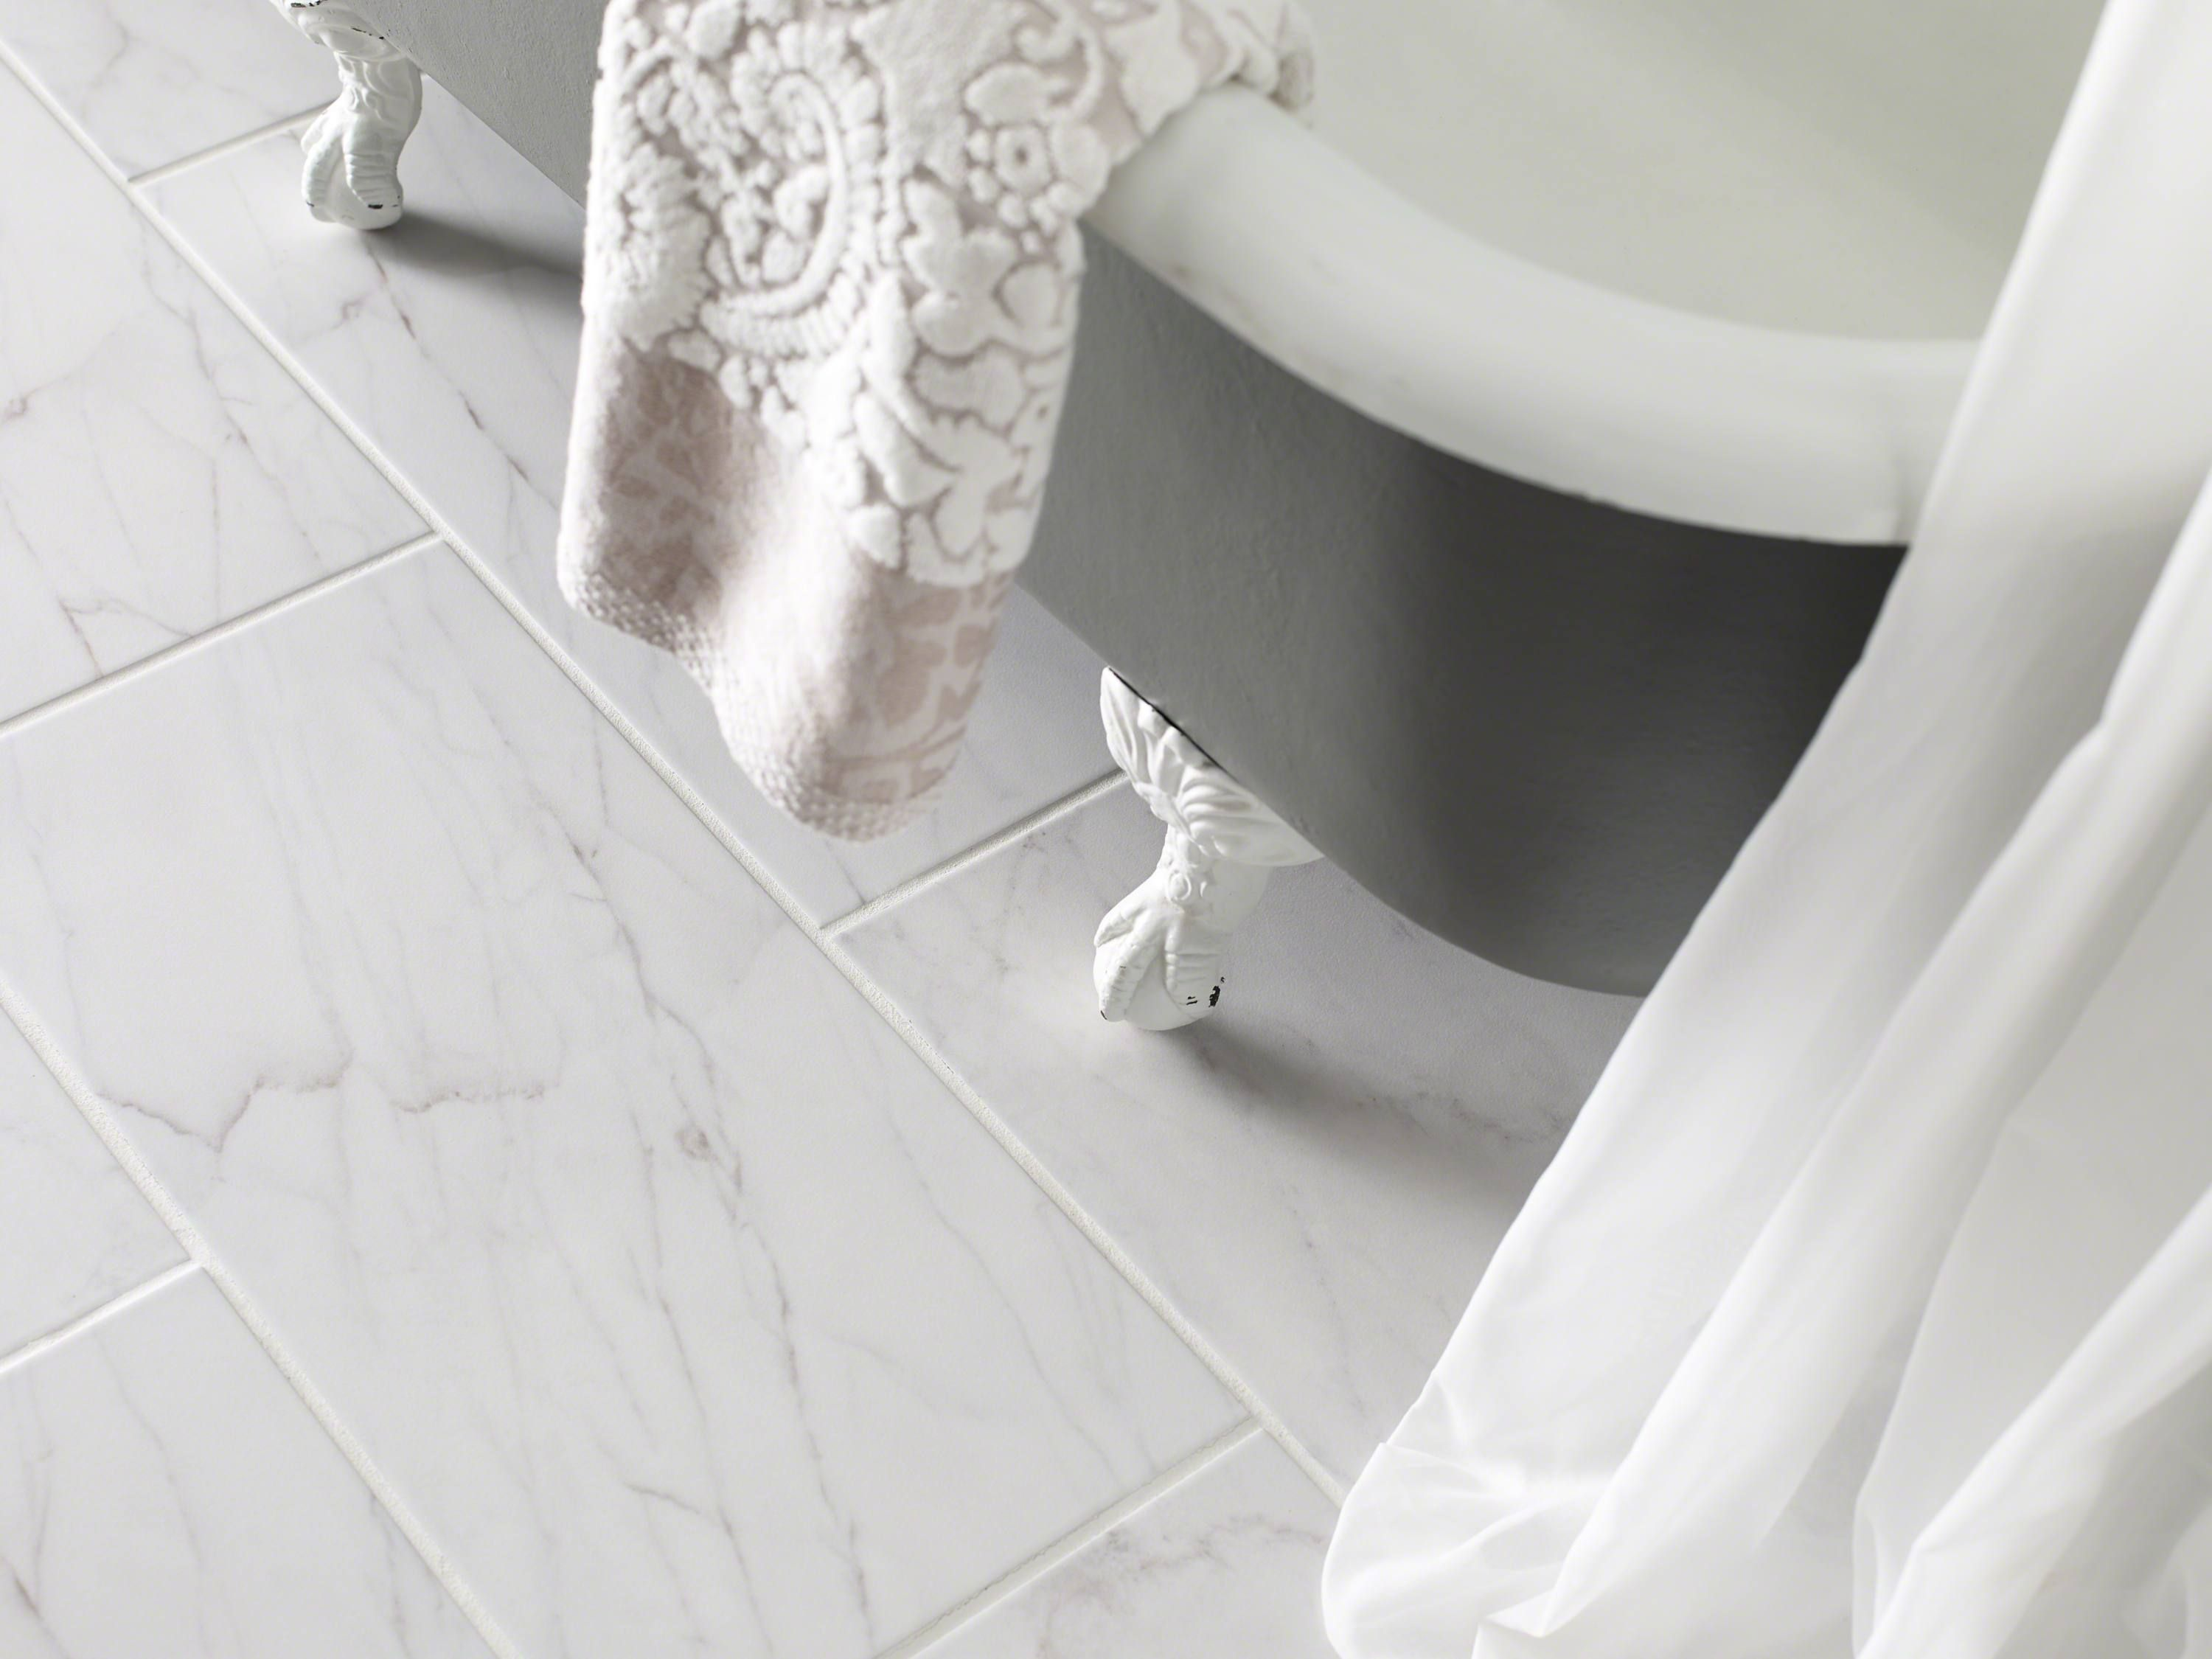 Shaw maximus carrara white bathrooms pinterest carrara shaws tile and stone for flooring and wall projects from backsplashes to fireplaces wide variety of tile flooring and wall tile colors dailygadgetfo Images